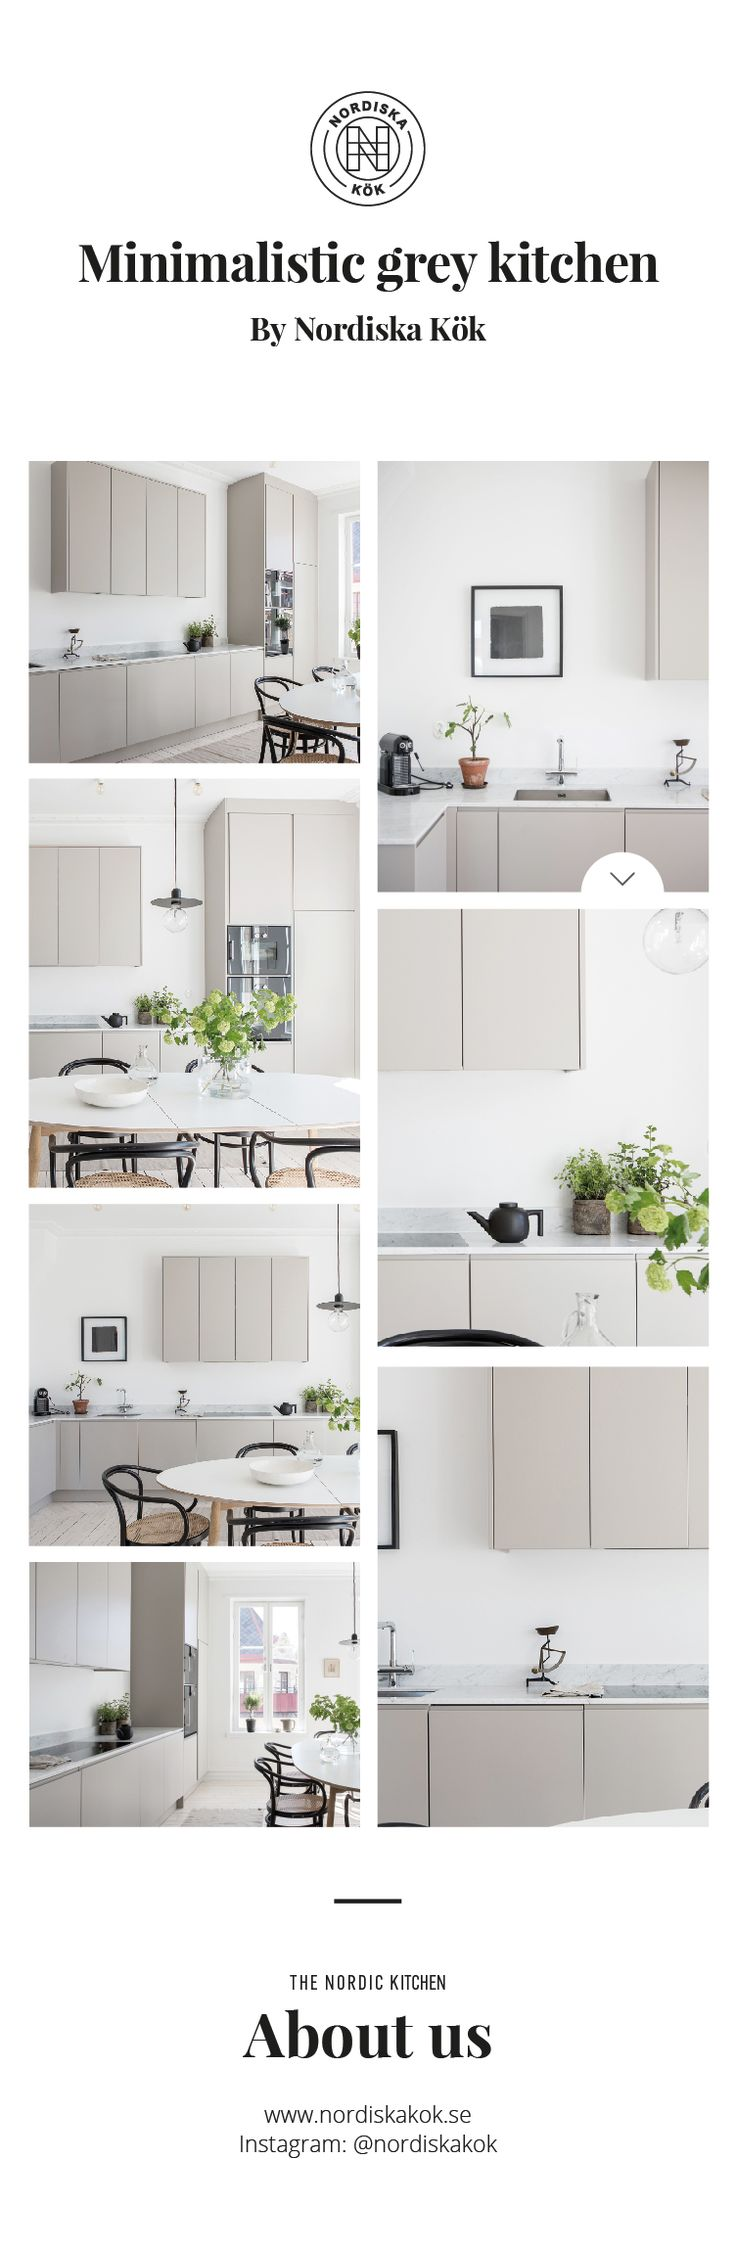 Minimalistic grey kitchen by Nordiska Kök. Clean and elegant kitchen ideal for high ceilings where form and function go hand in hand. The soft greige tones set off the marble worktop. For more kitchen inspiration visit www.nordiskakok.se #kitchen #bespokekitchen #interior #architect #grey #white #framekitchen #minimalism #minimalistic #wood #kitchendesign #kitchenideas #greykitchen #design #designtrends #beautifulkitchens